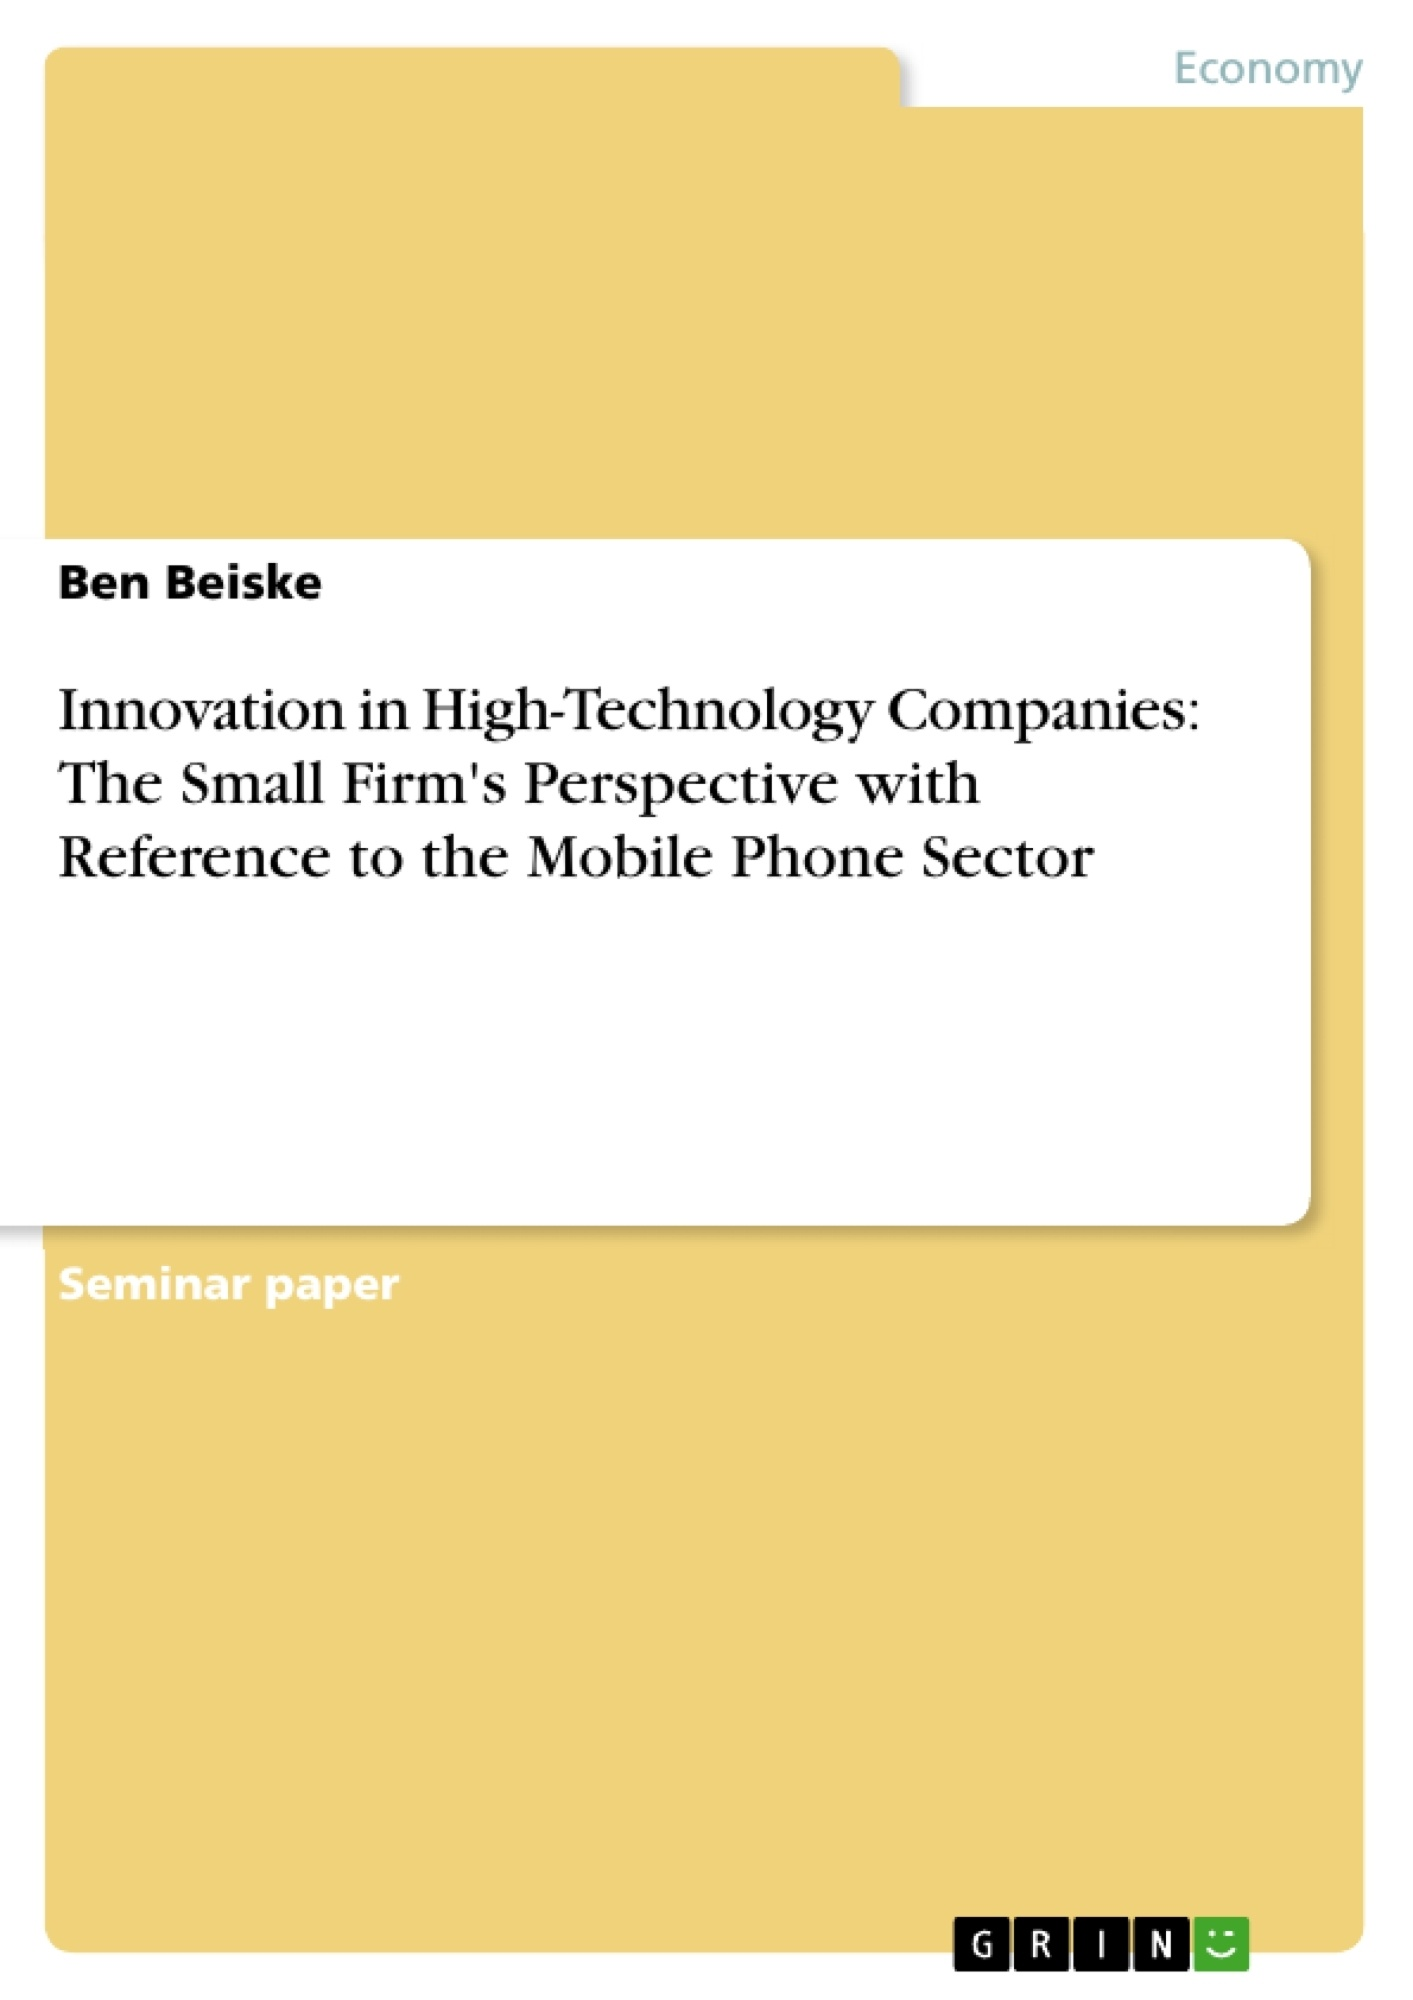 Title: Innovation in High-Technology Companies: The Small Firm's Perspective with Reference to the Mobile Phone Sector